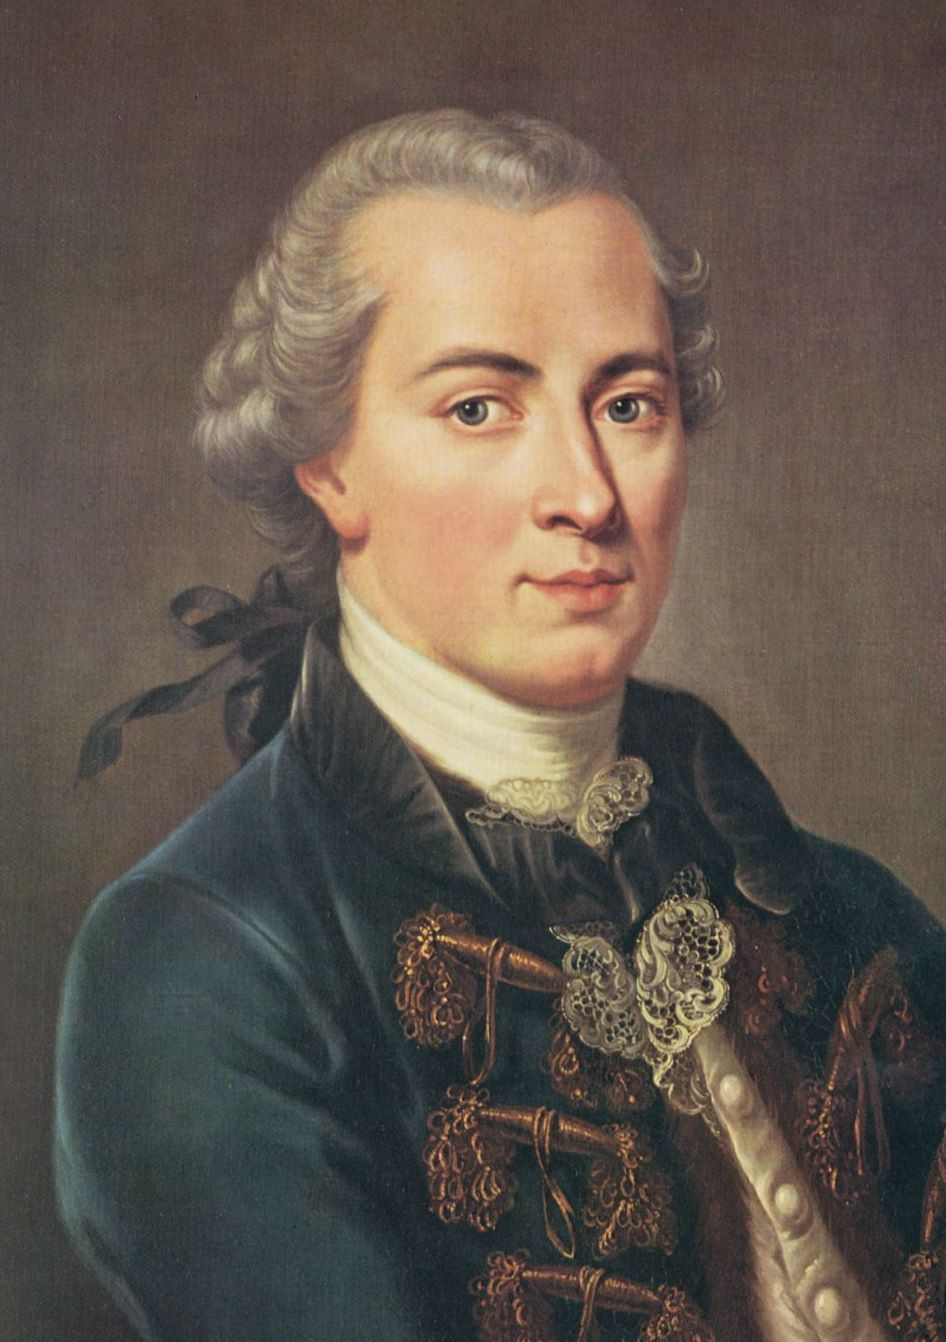 Immanuel Kant had reversed the way philosophers think about the relationship of the world of experience and the mind. As per Kant, the mind is not shaped by the world of experience; rather, the world of experience is shaped by the patterns set by the mind.